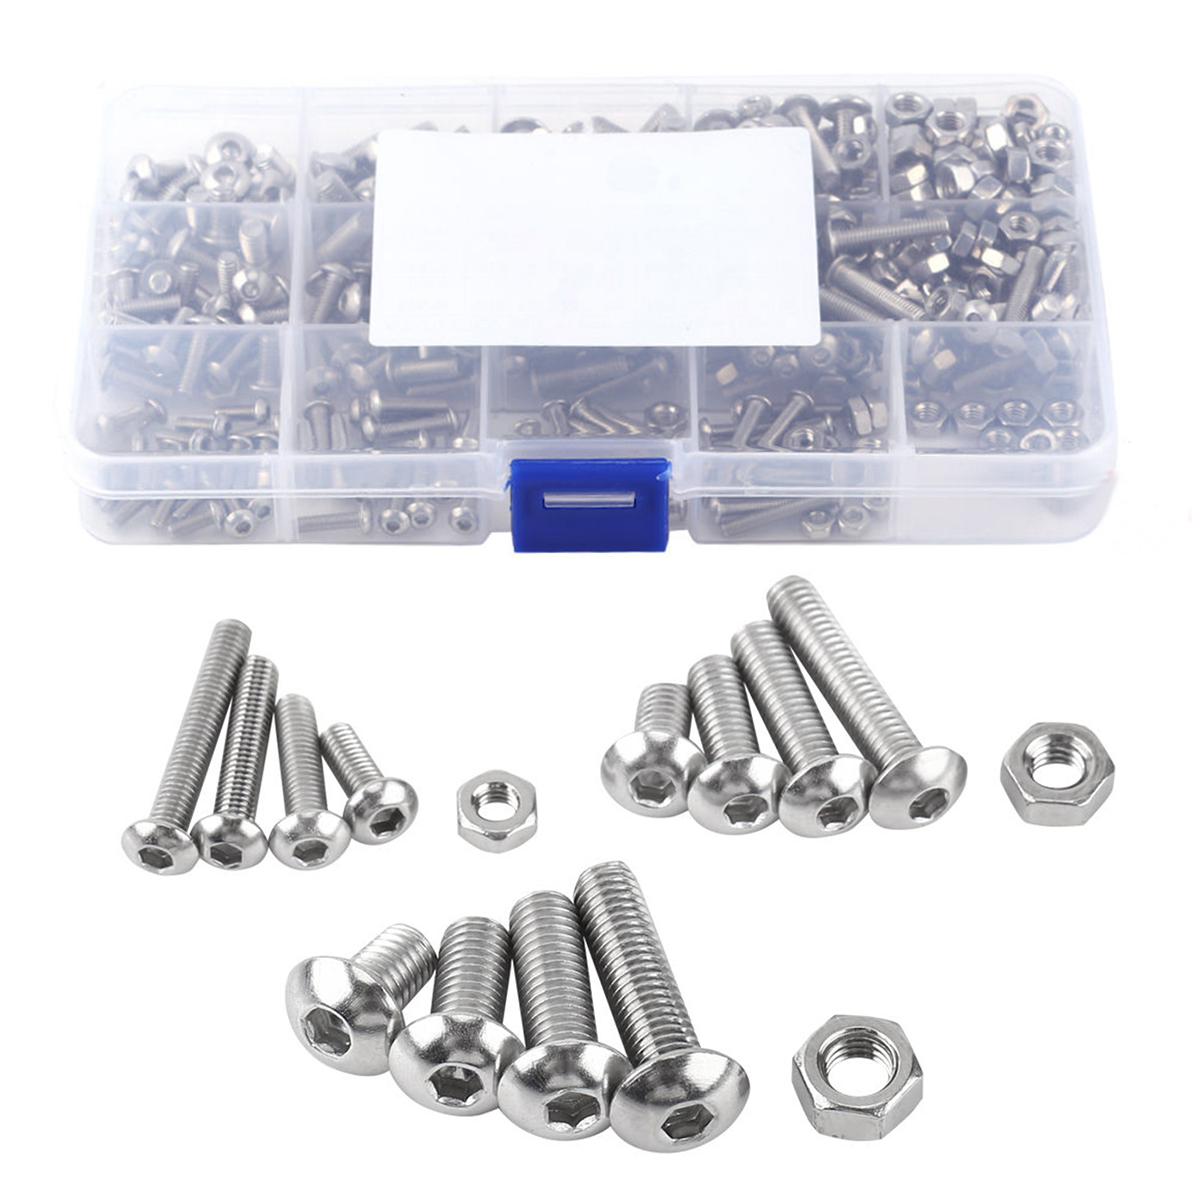 440pcs Hex Socket Button Head Bolts M3 M4 M5 Stainless Steel Metric Screws Nuts Assortment Kit Set with Plastic Box